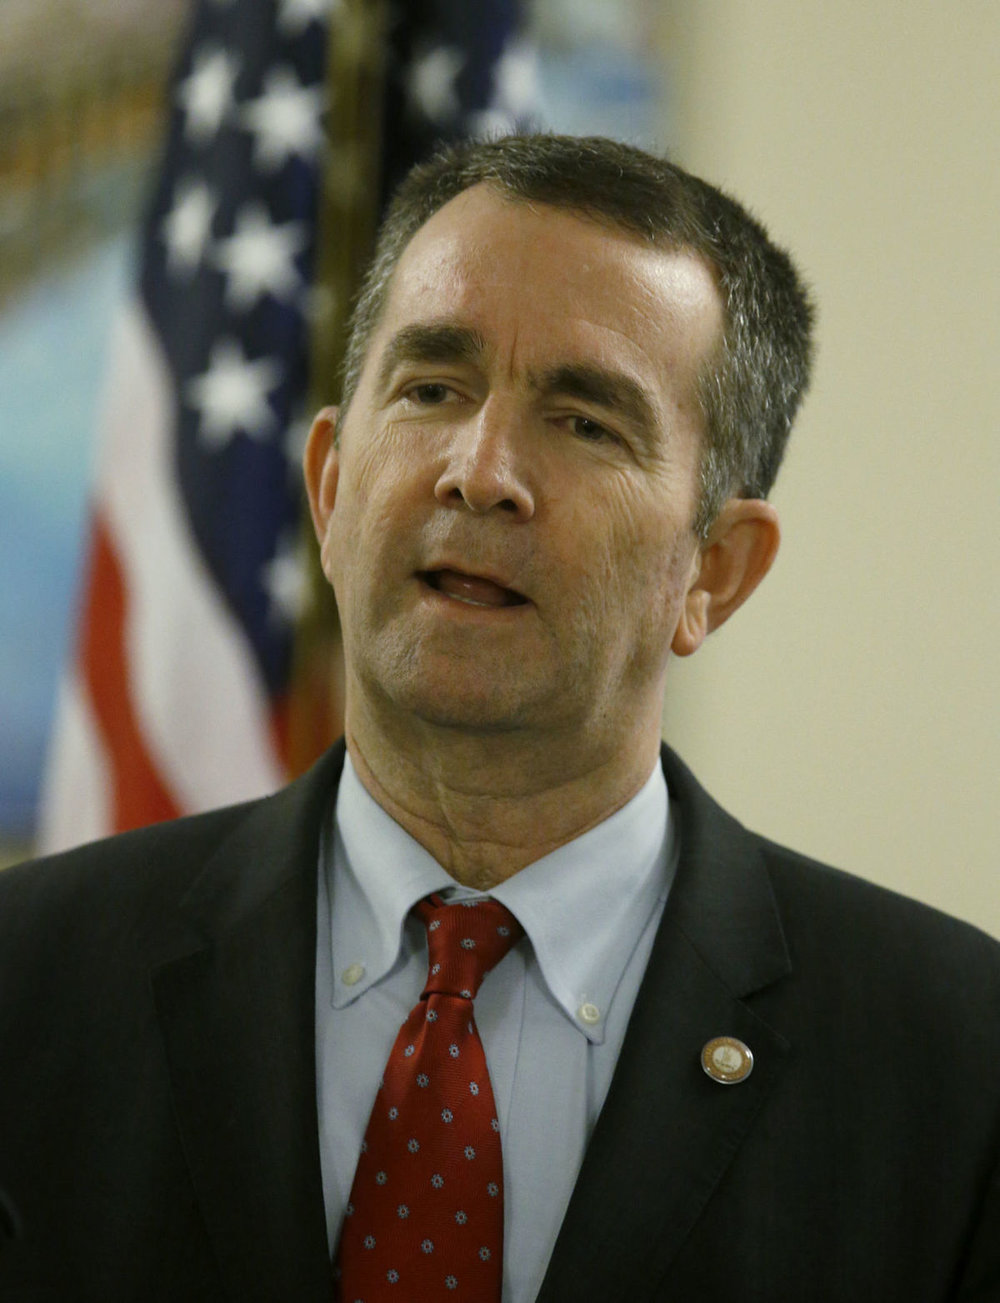 Gubernatorial candidate Ralph Northam. Photo courtesy of the Richmond Times Dispatch.